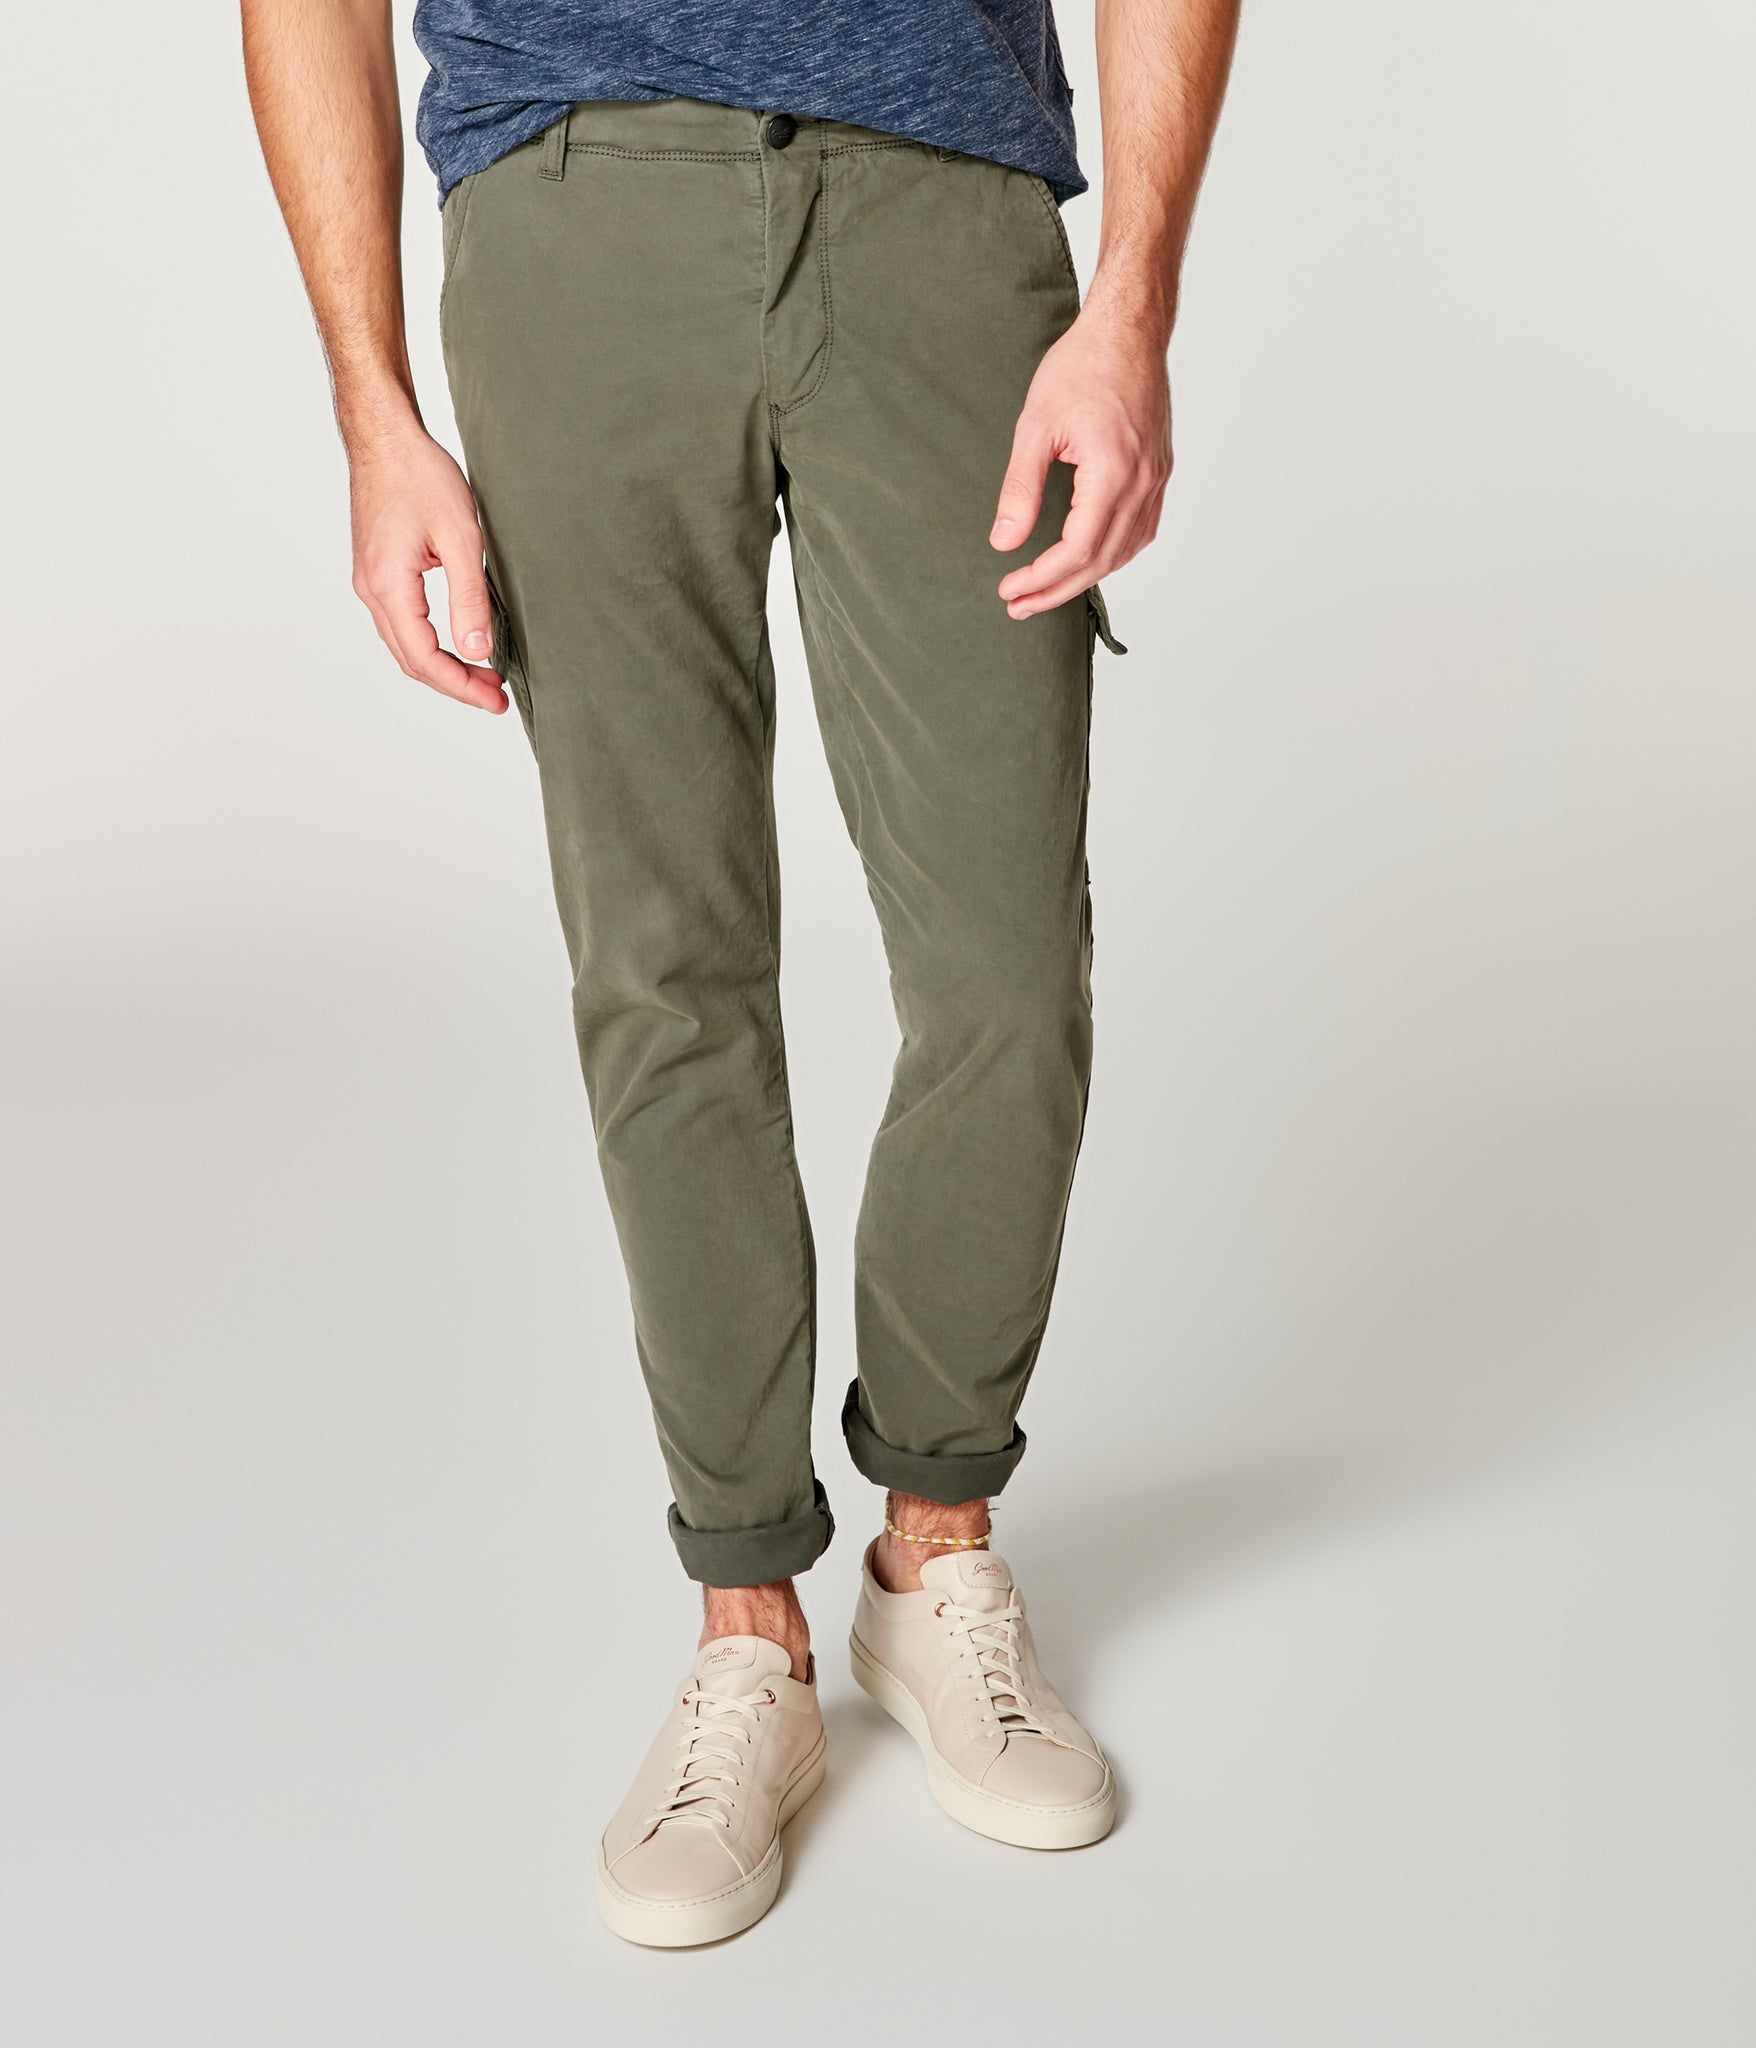 Pro Stretch Twill Star Cargo Chino - Military Green